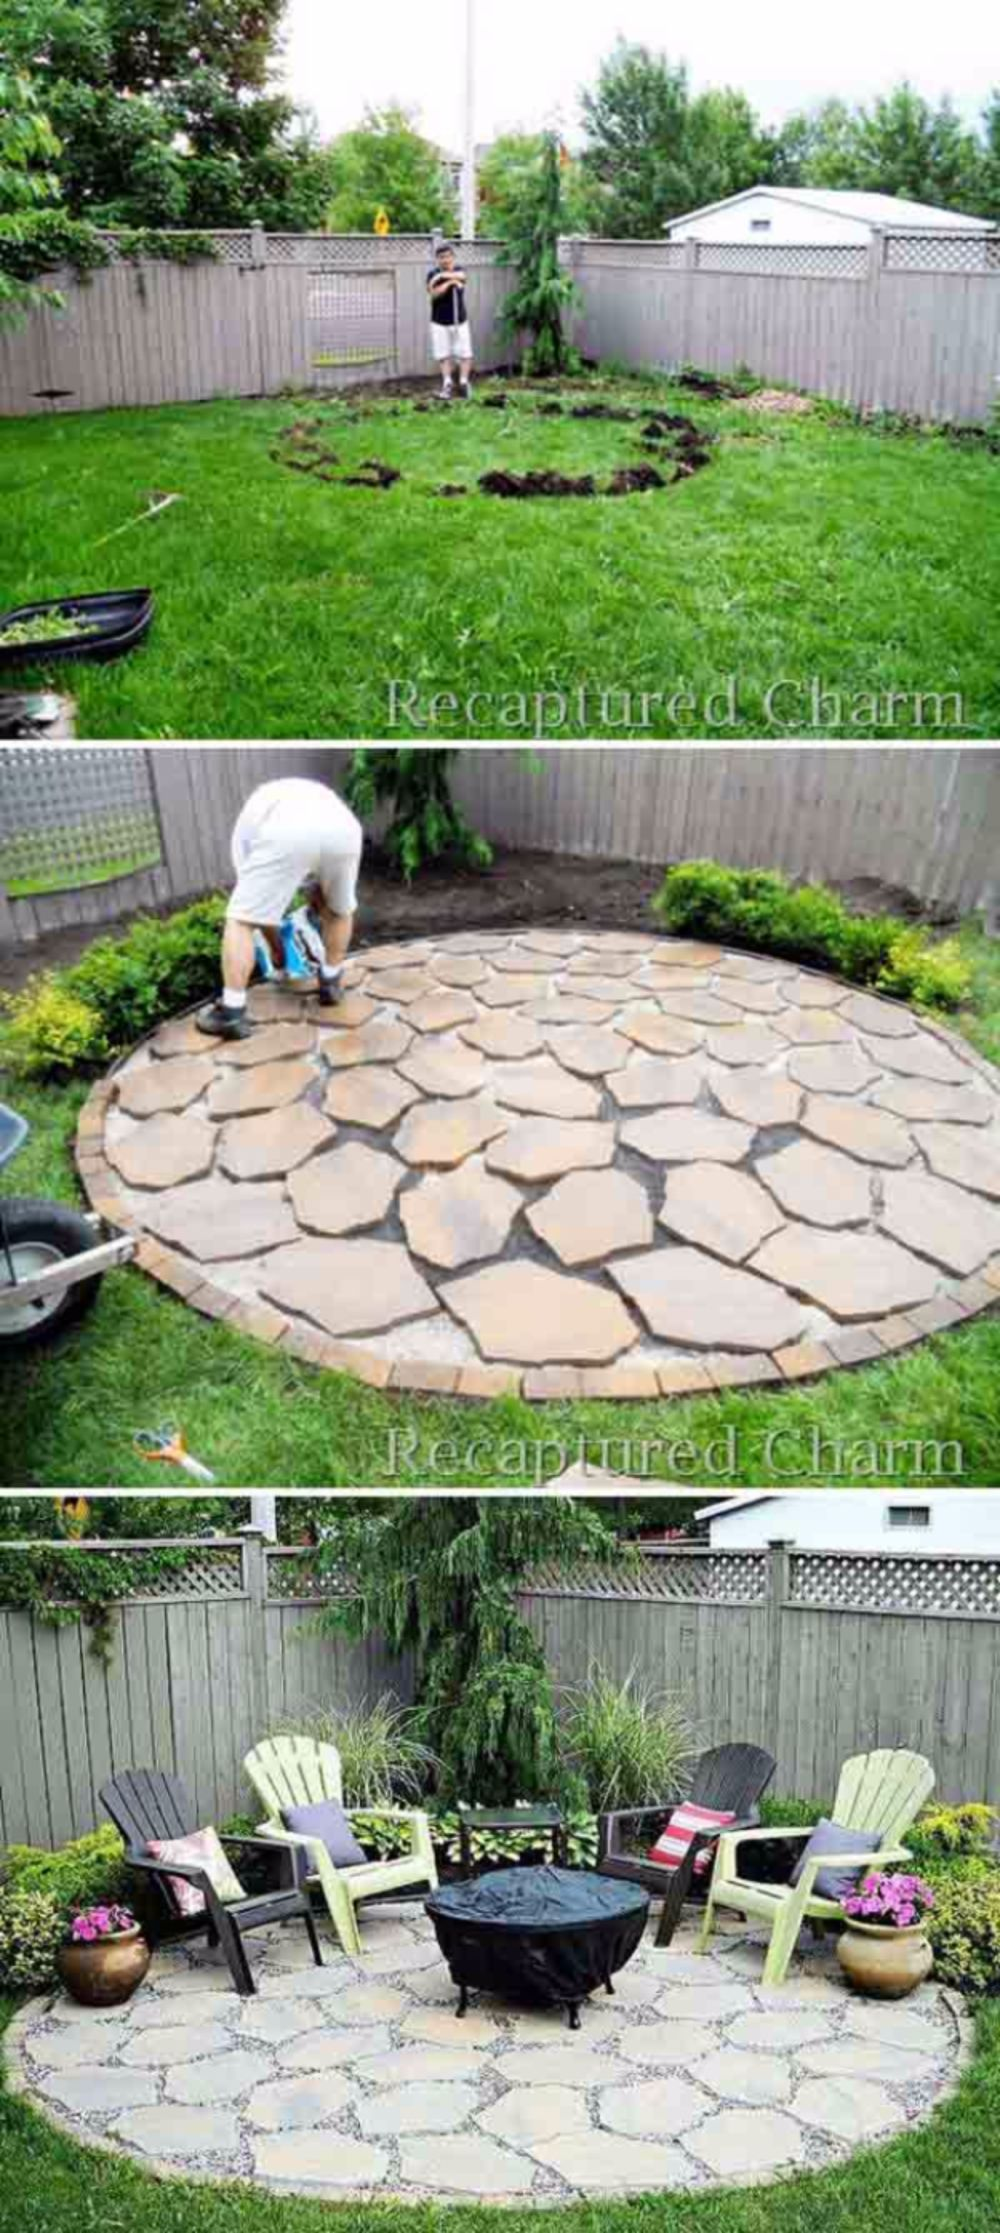 30 DIY Patio Ideas on A Budget | Pinterest | Diy patio, Patios and ...